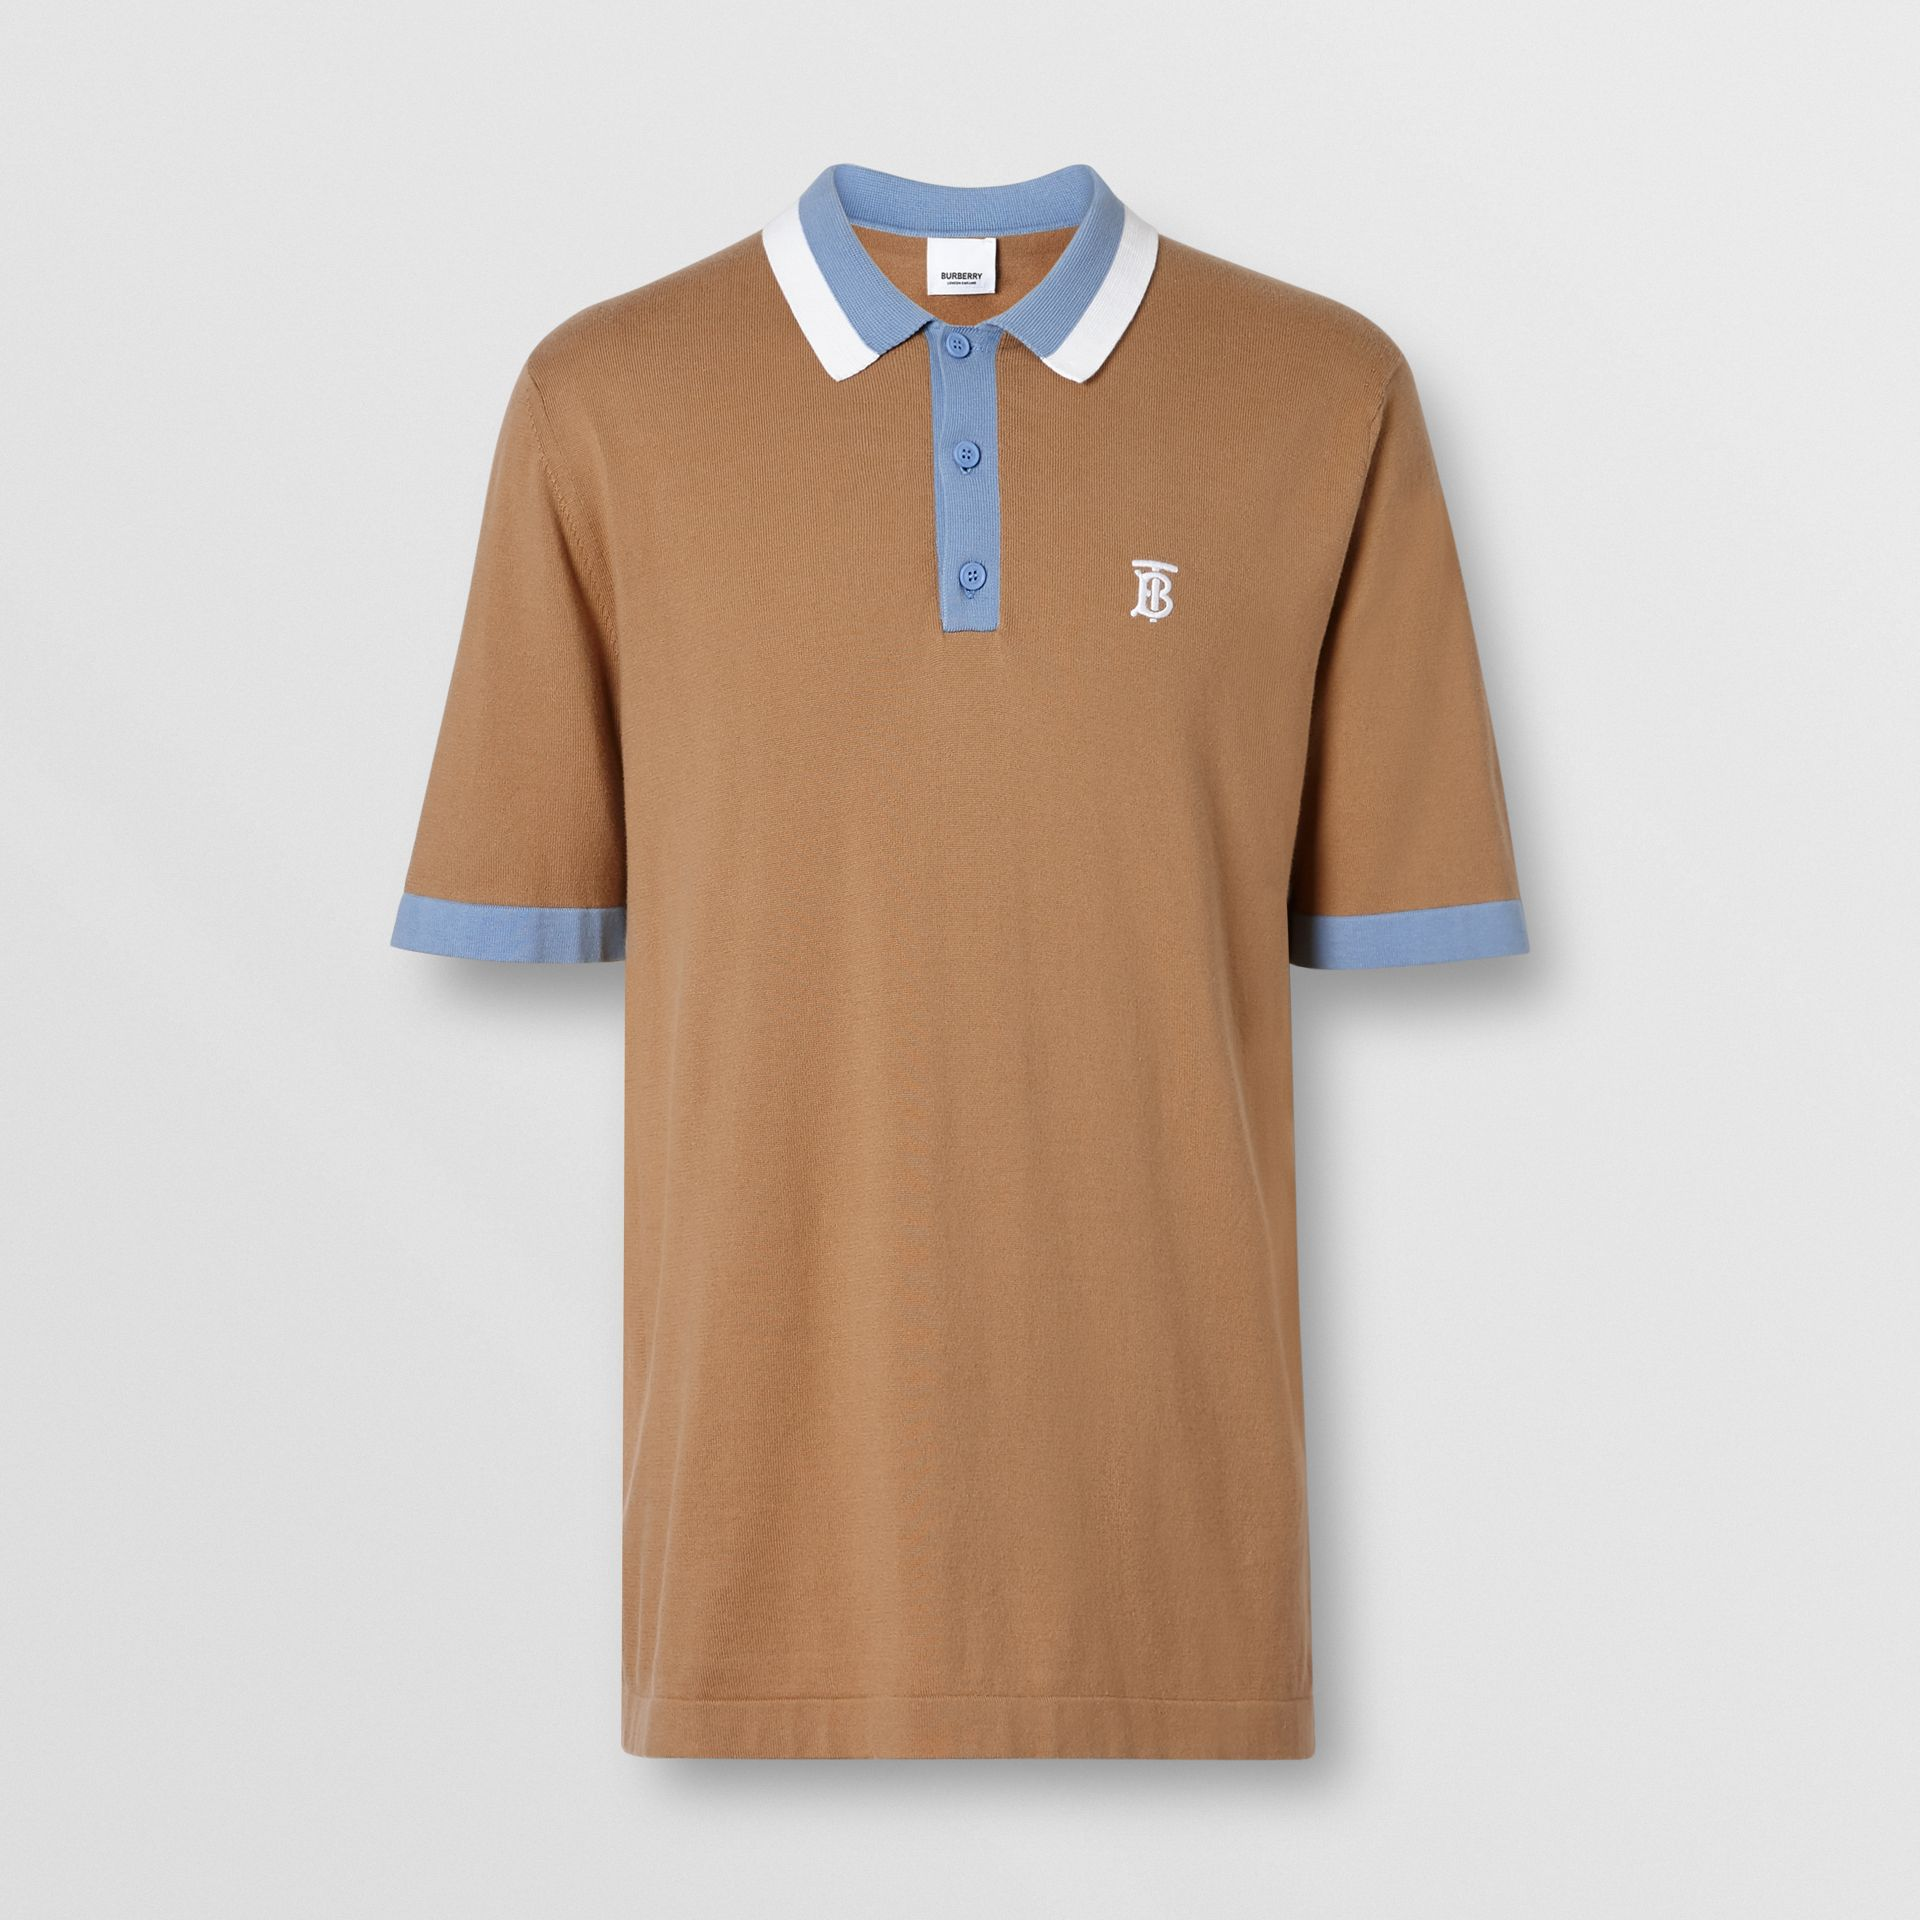 Monogram Motif Tipped Cotton Polo Shirt in Camel - Men | Burberry - gallery image 3